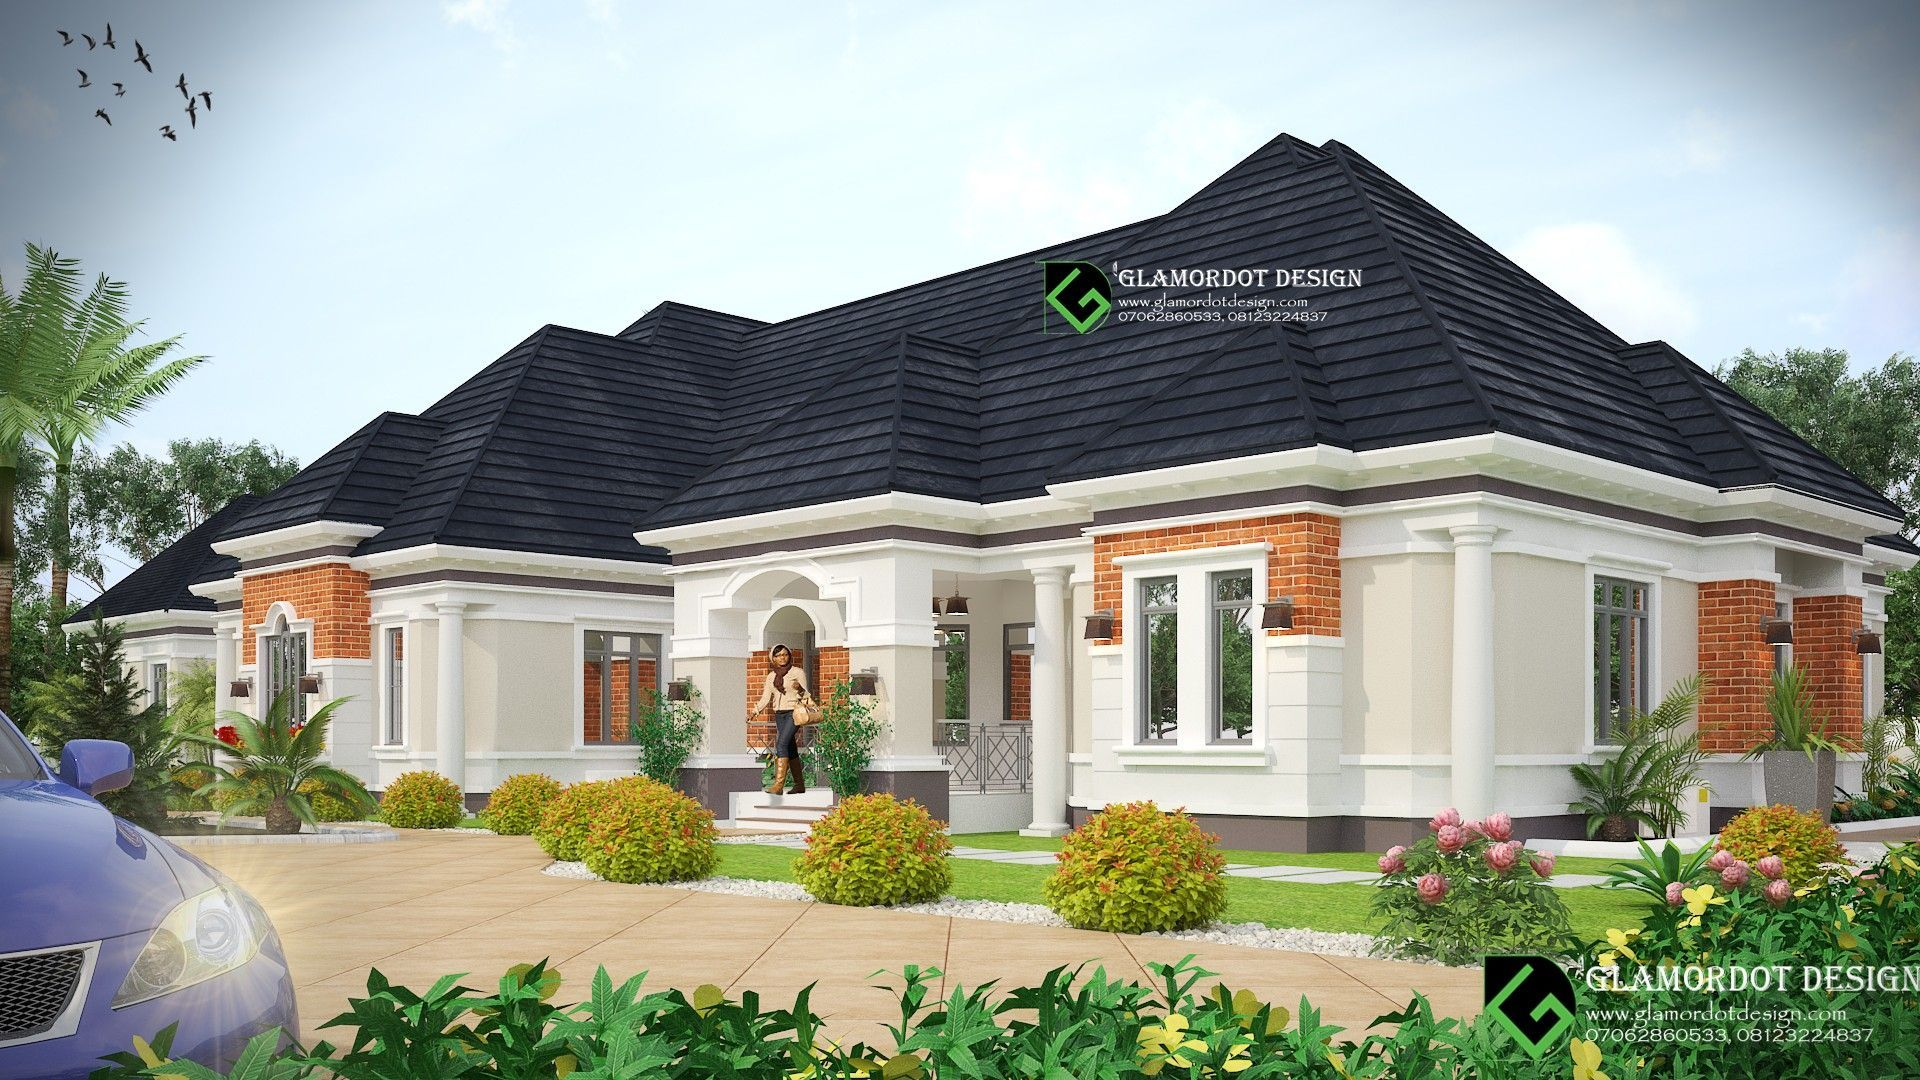 Small Bungalow House Design With Terrace In Philippines In 2020 Bungalow House Design House Outside Design House Balcony Design